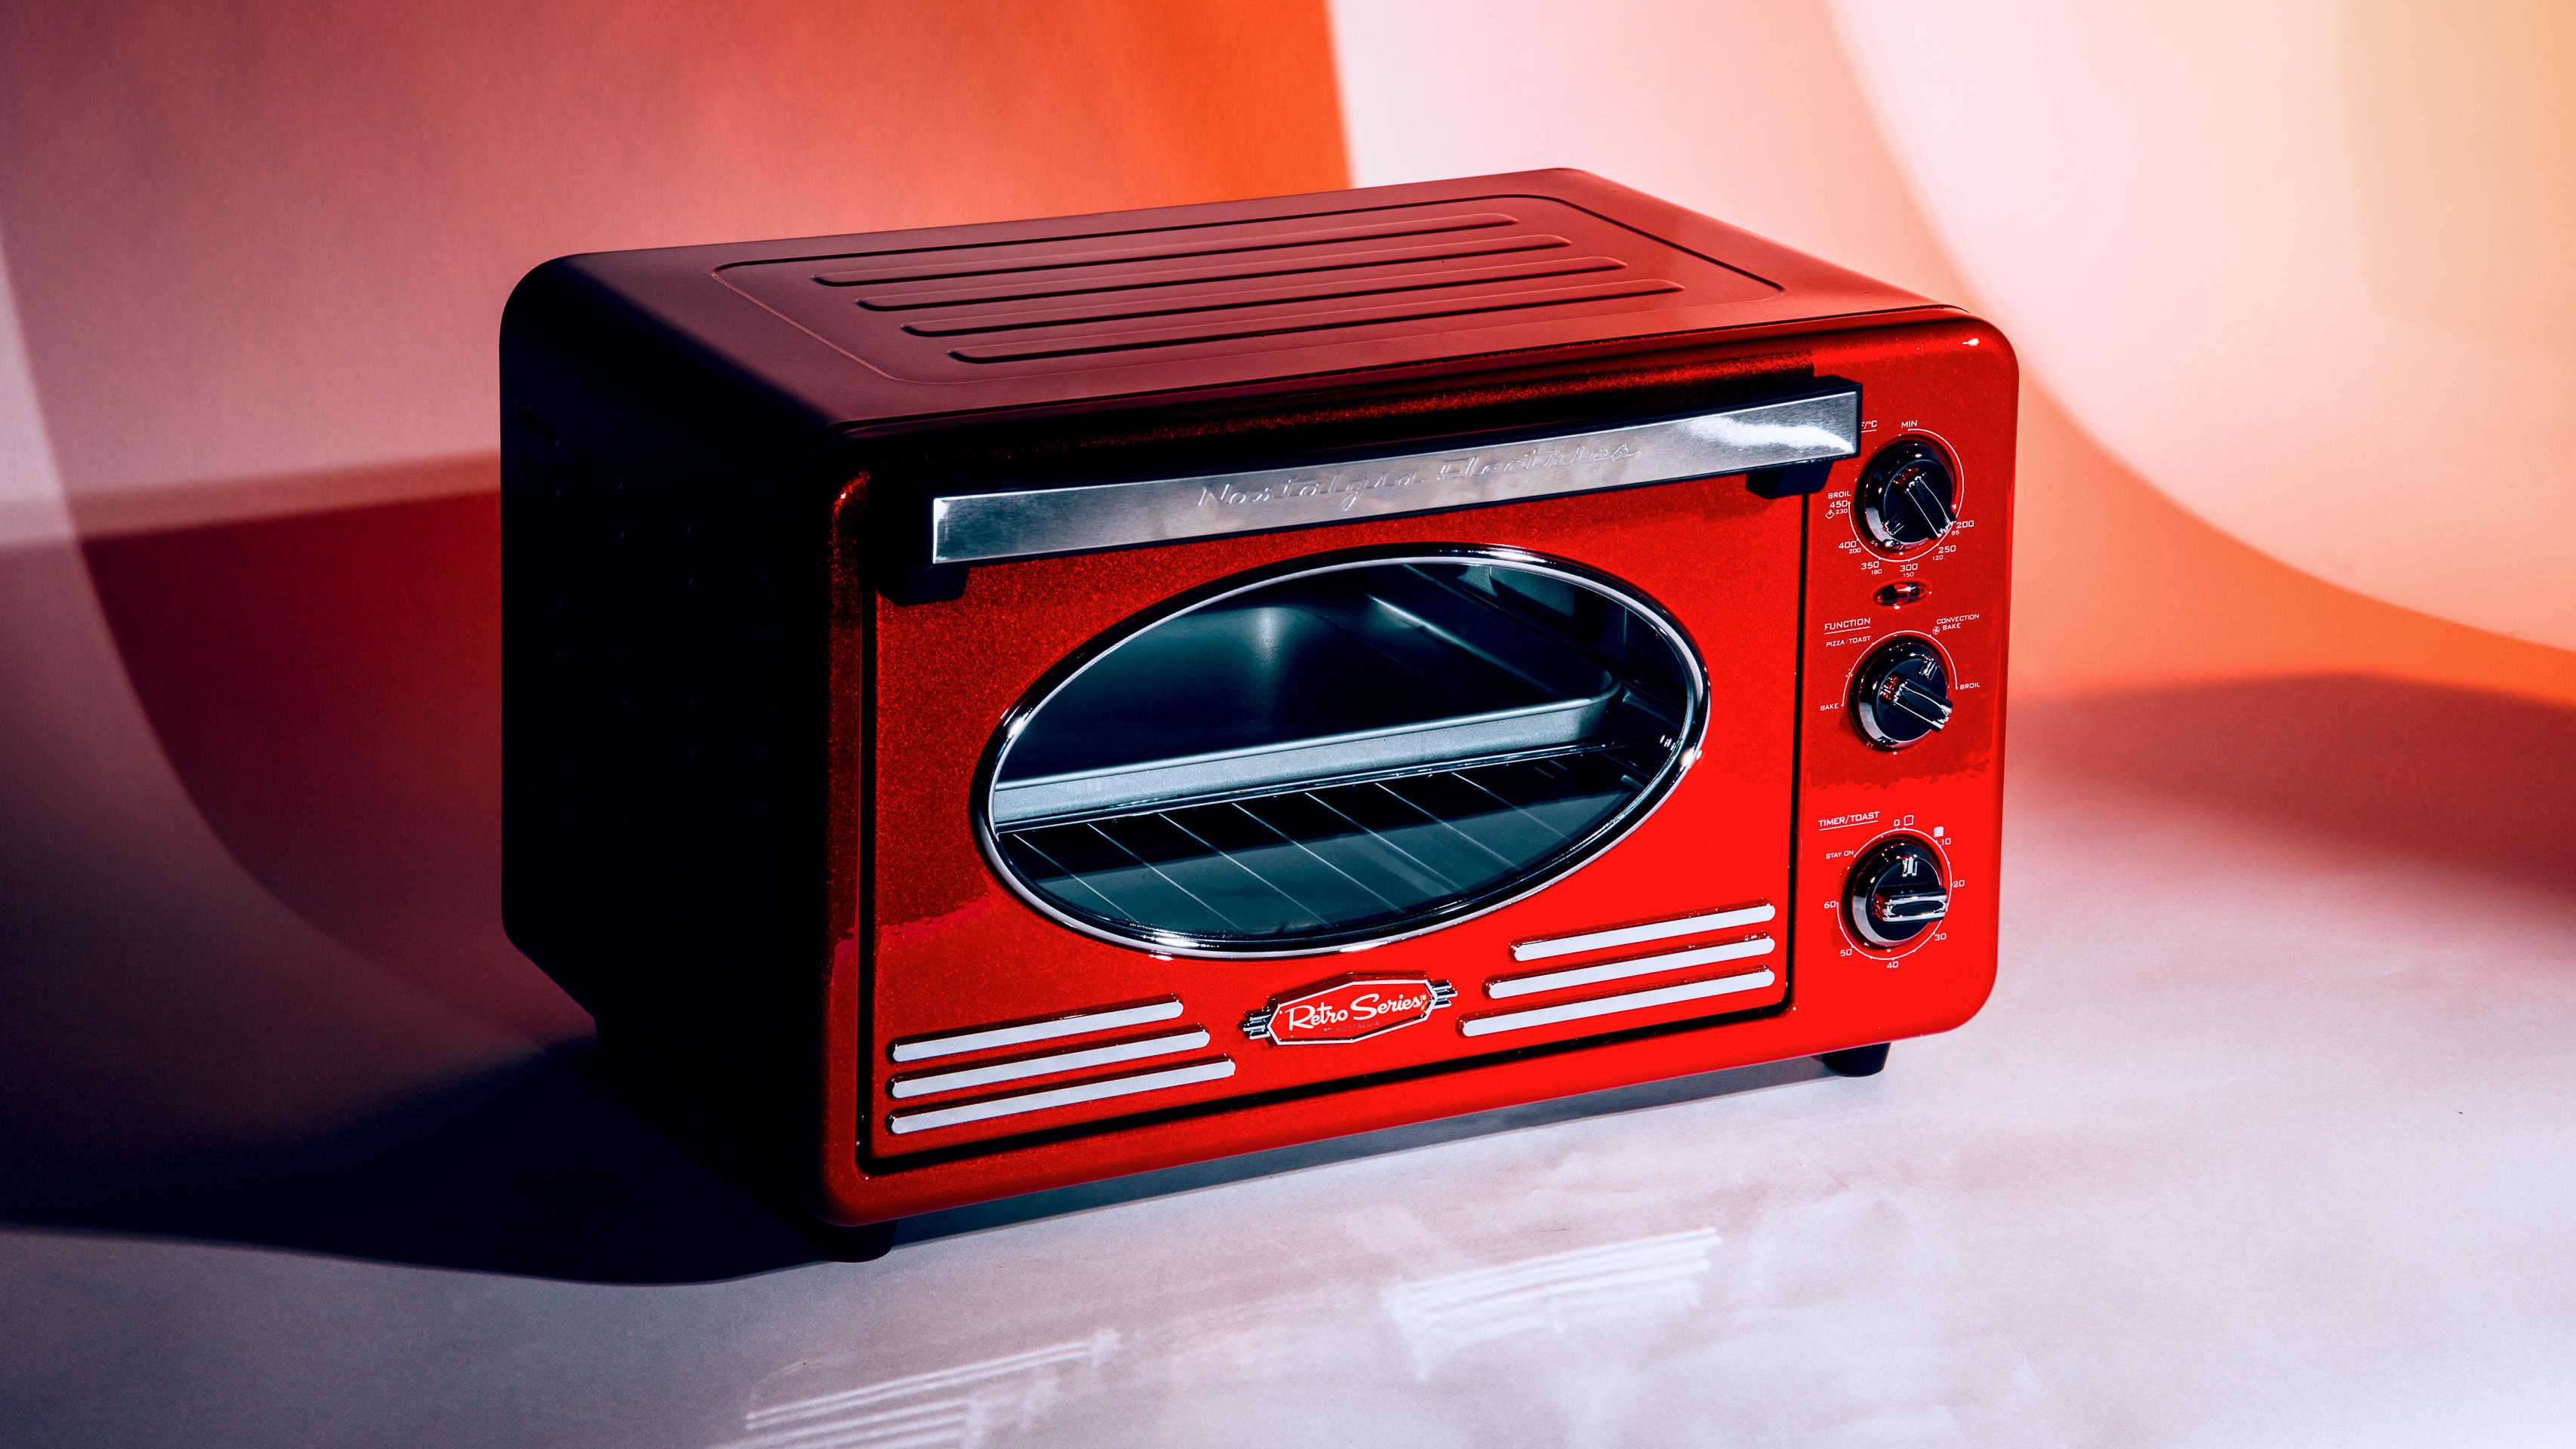 The best toaster oven is the one you'll hate the least